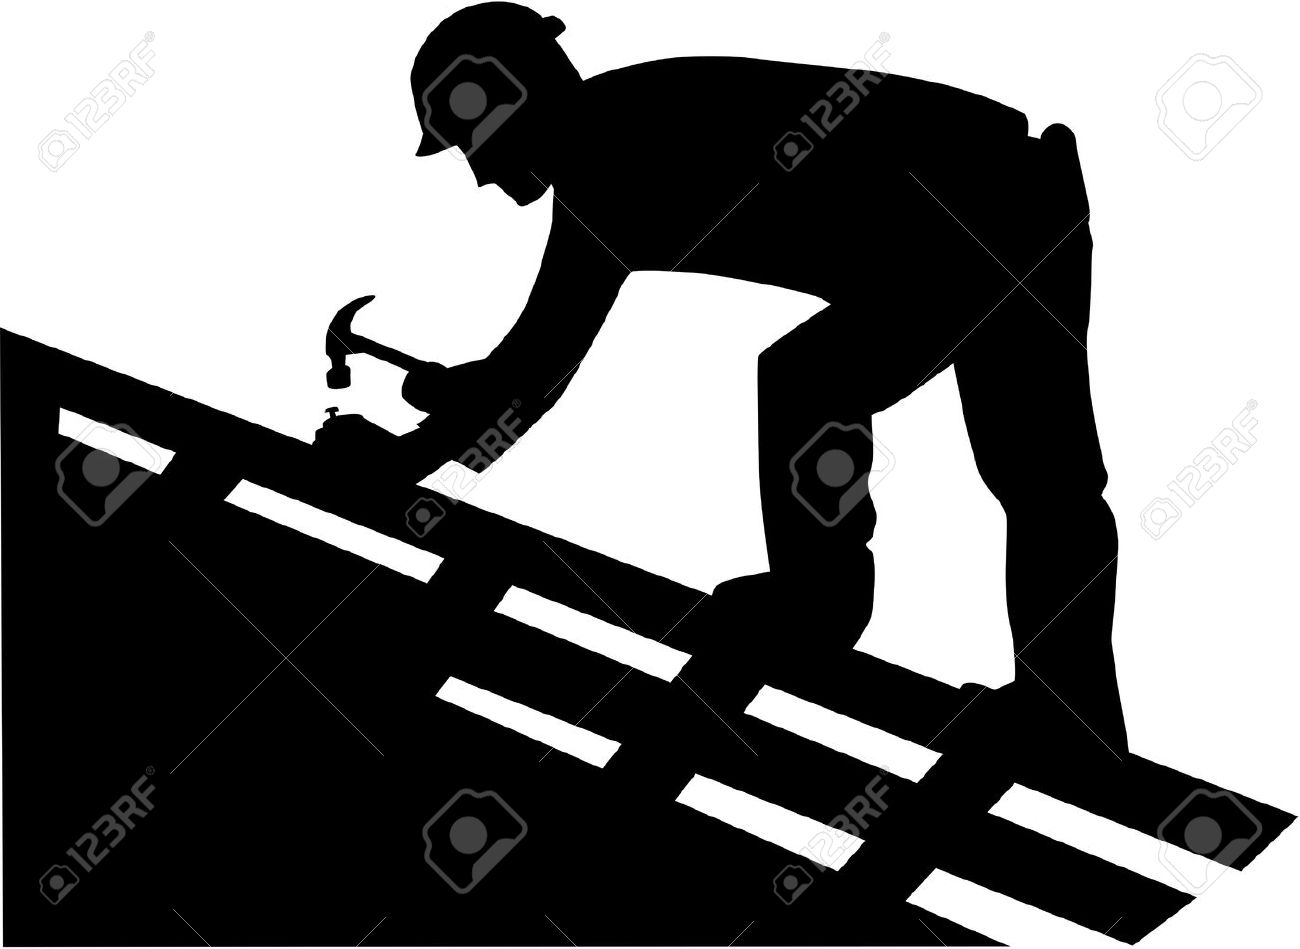 Roofer Vector Roofer Silhouette